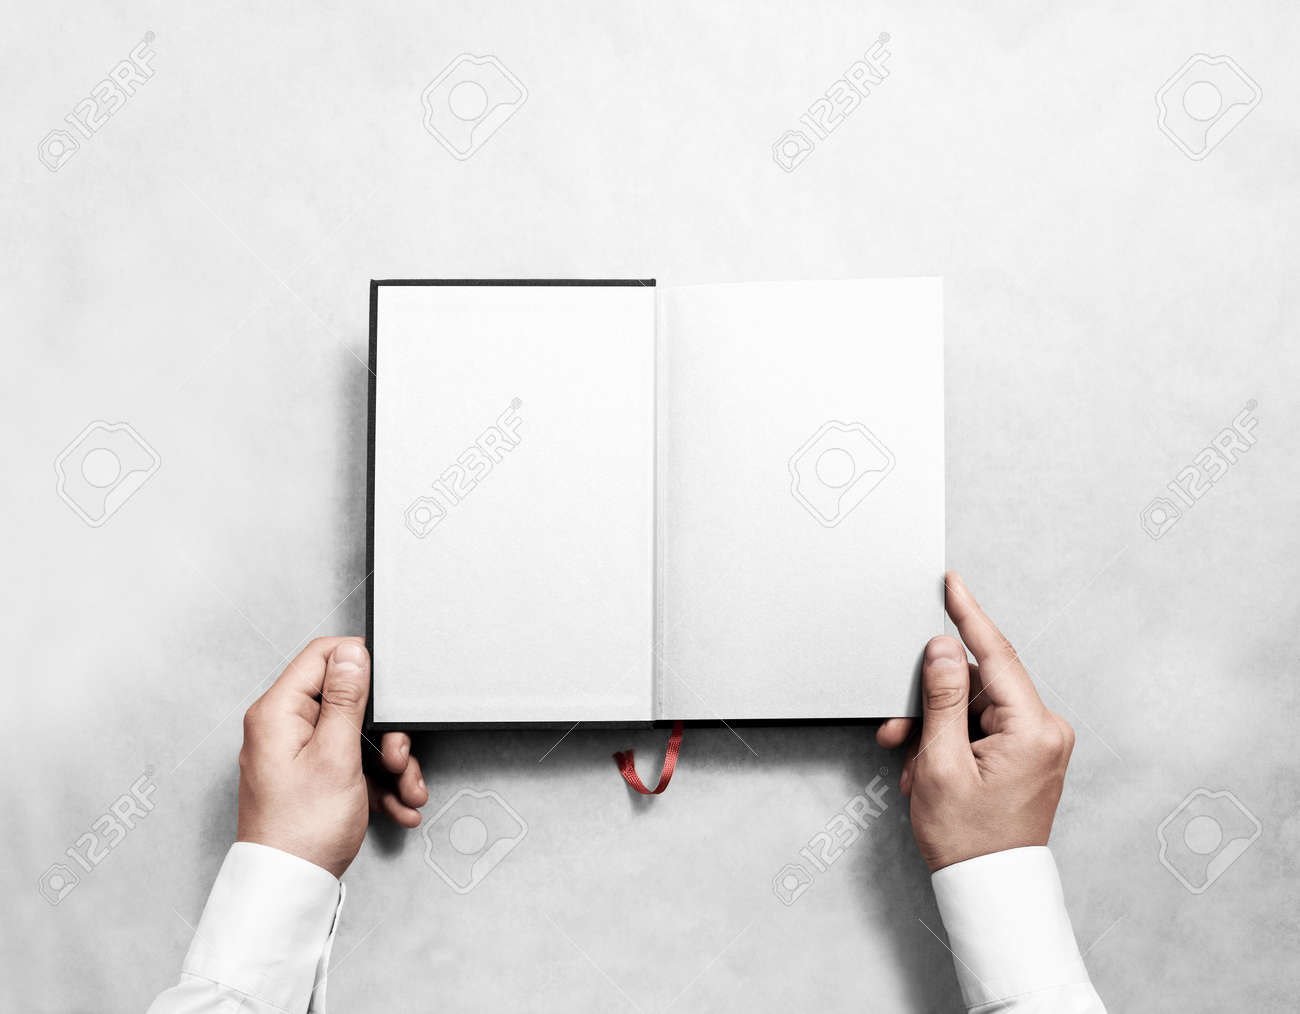 Hand Holding Blank Opened Book Mock Up With White Half Title